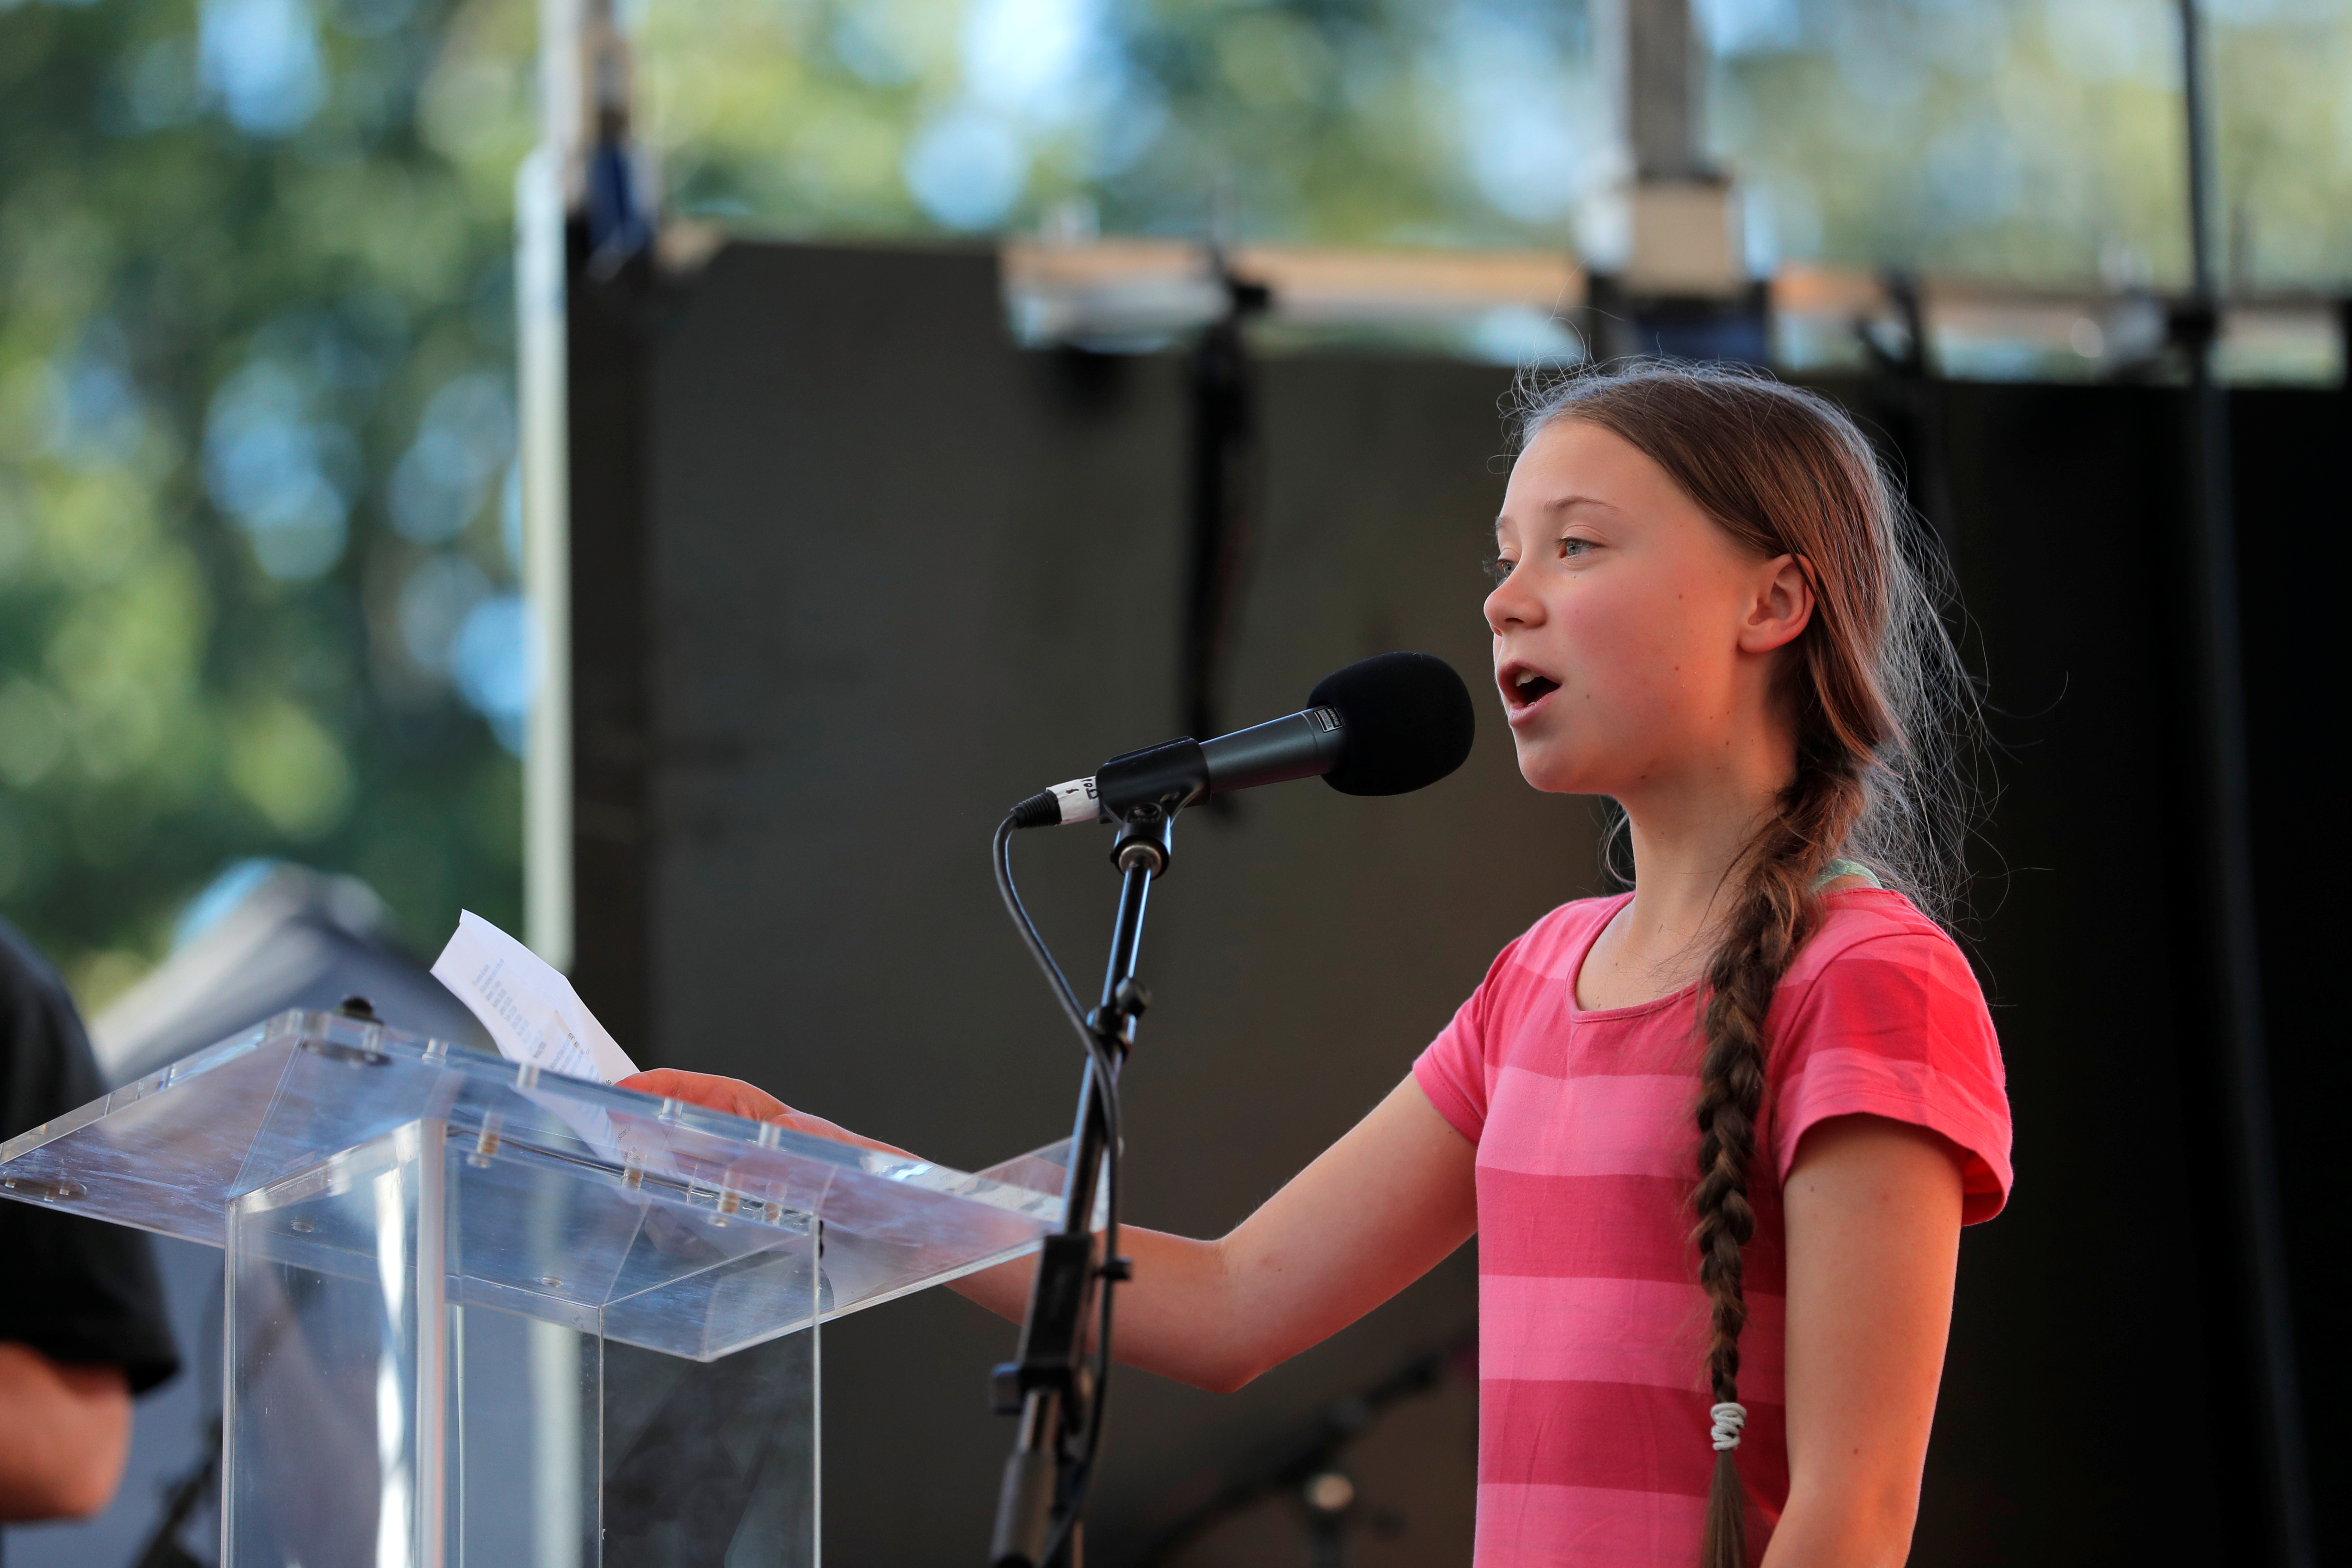 Sixteen year-old Swedish climate activist Greta Thunberg speaks to a large crowd of demonstrators at the Global Climate Strike in lower Manhattan in New York, U.S., September 20, 2019. REUTERS/Lucas Jackson